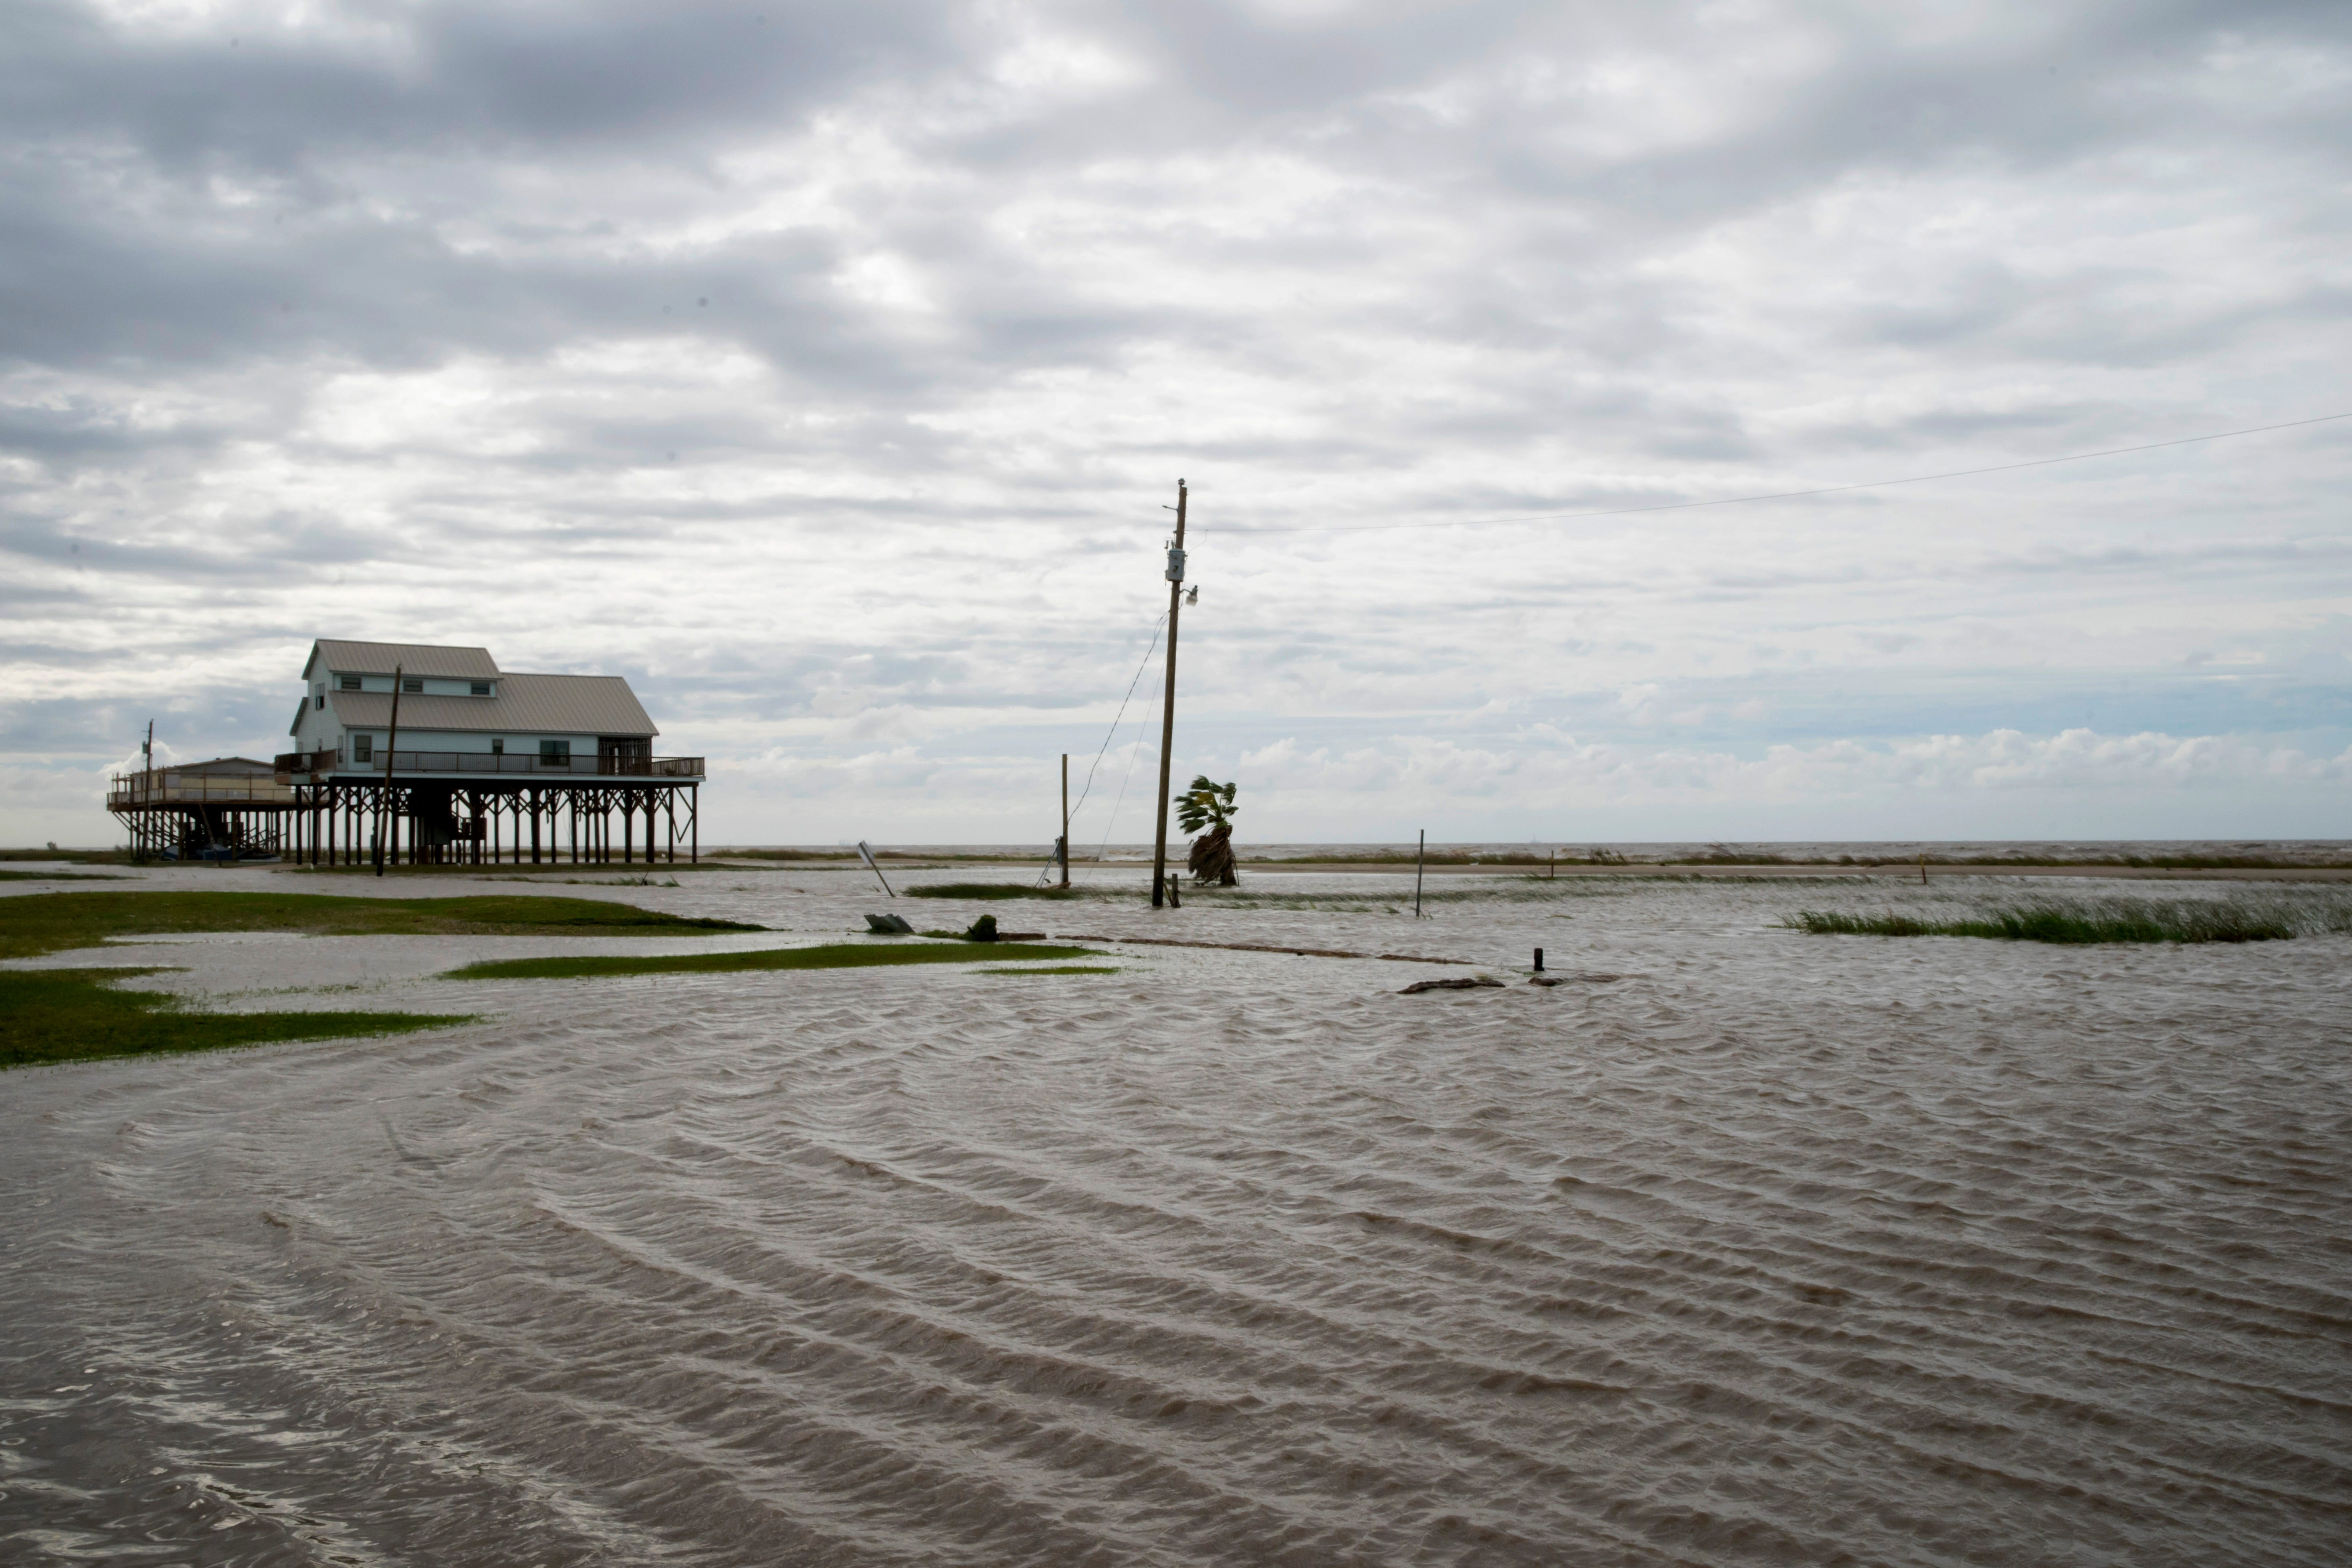 Hurricane Laura s  unsurvivable  storm surge: It looks like Louisiana was spared, but some rural areas likely hit hard